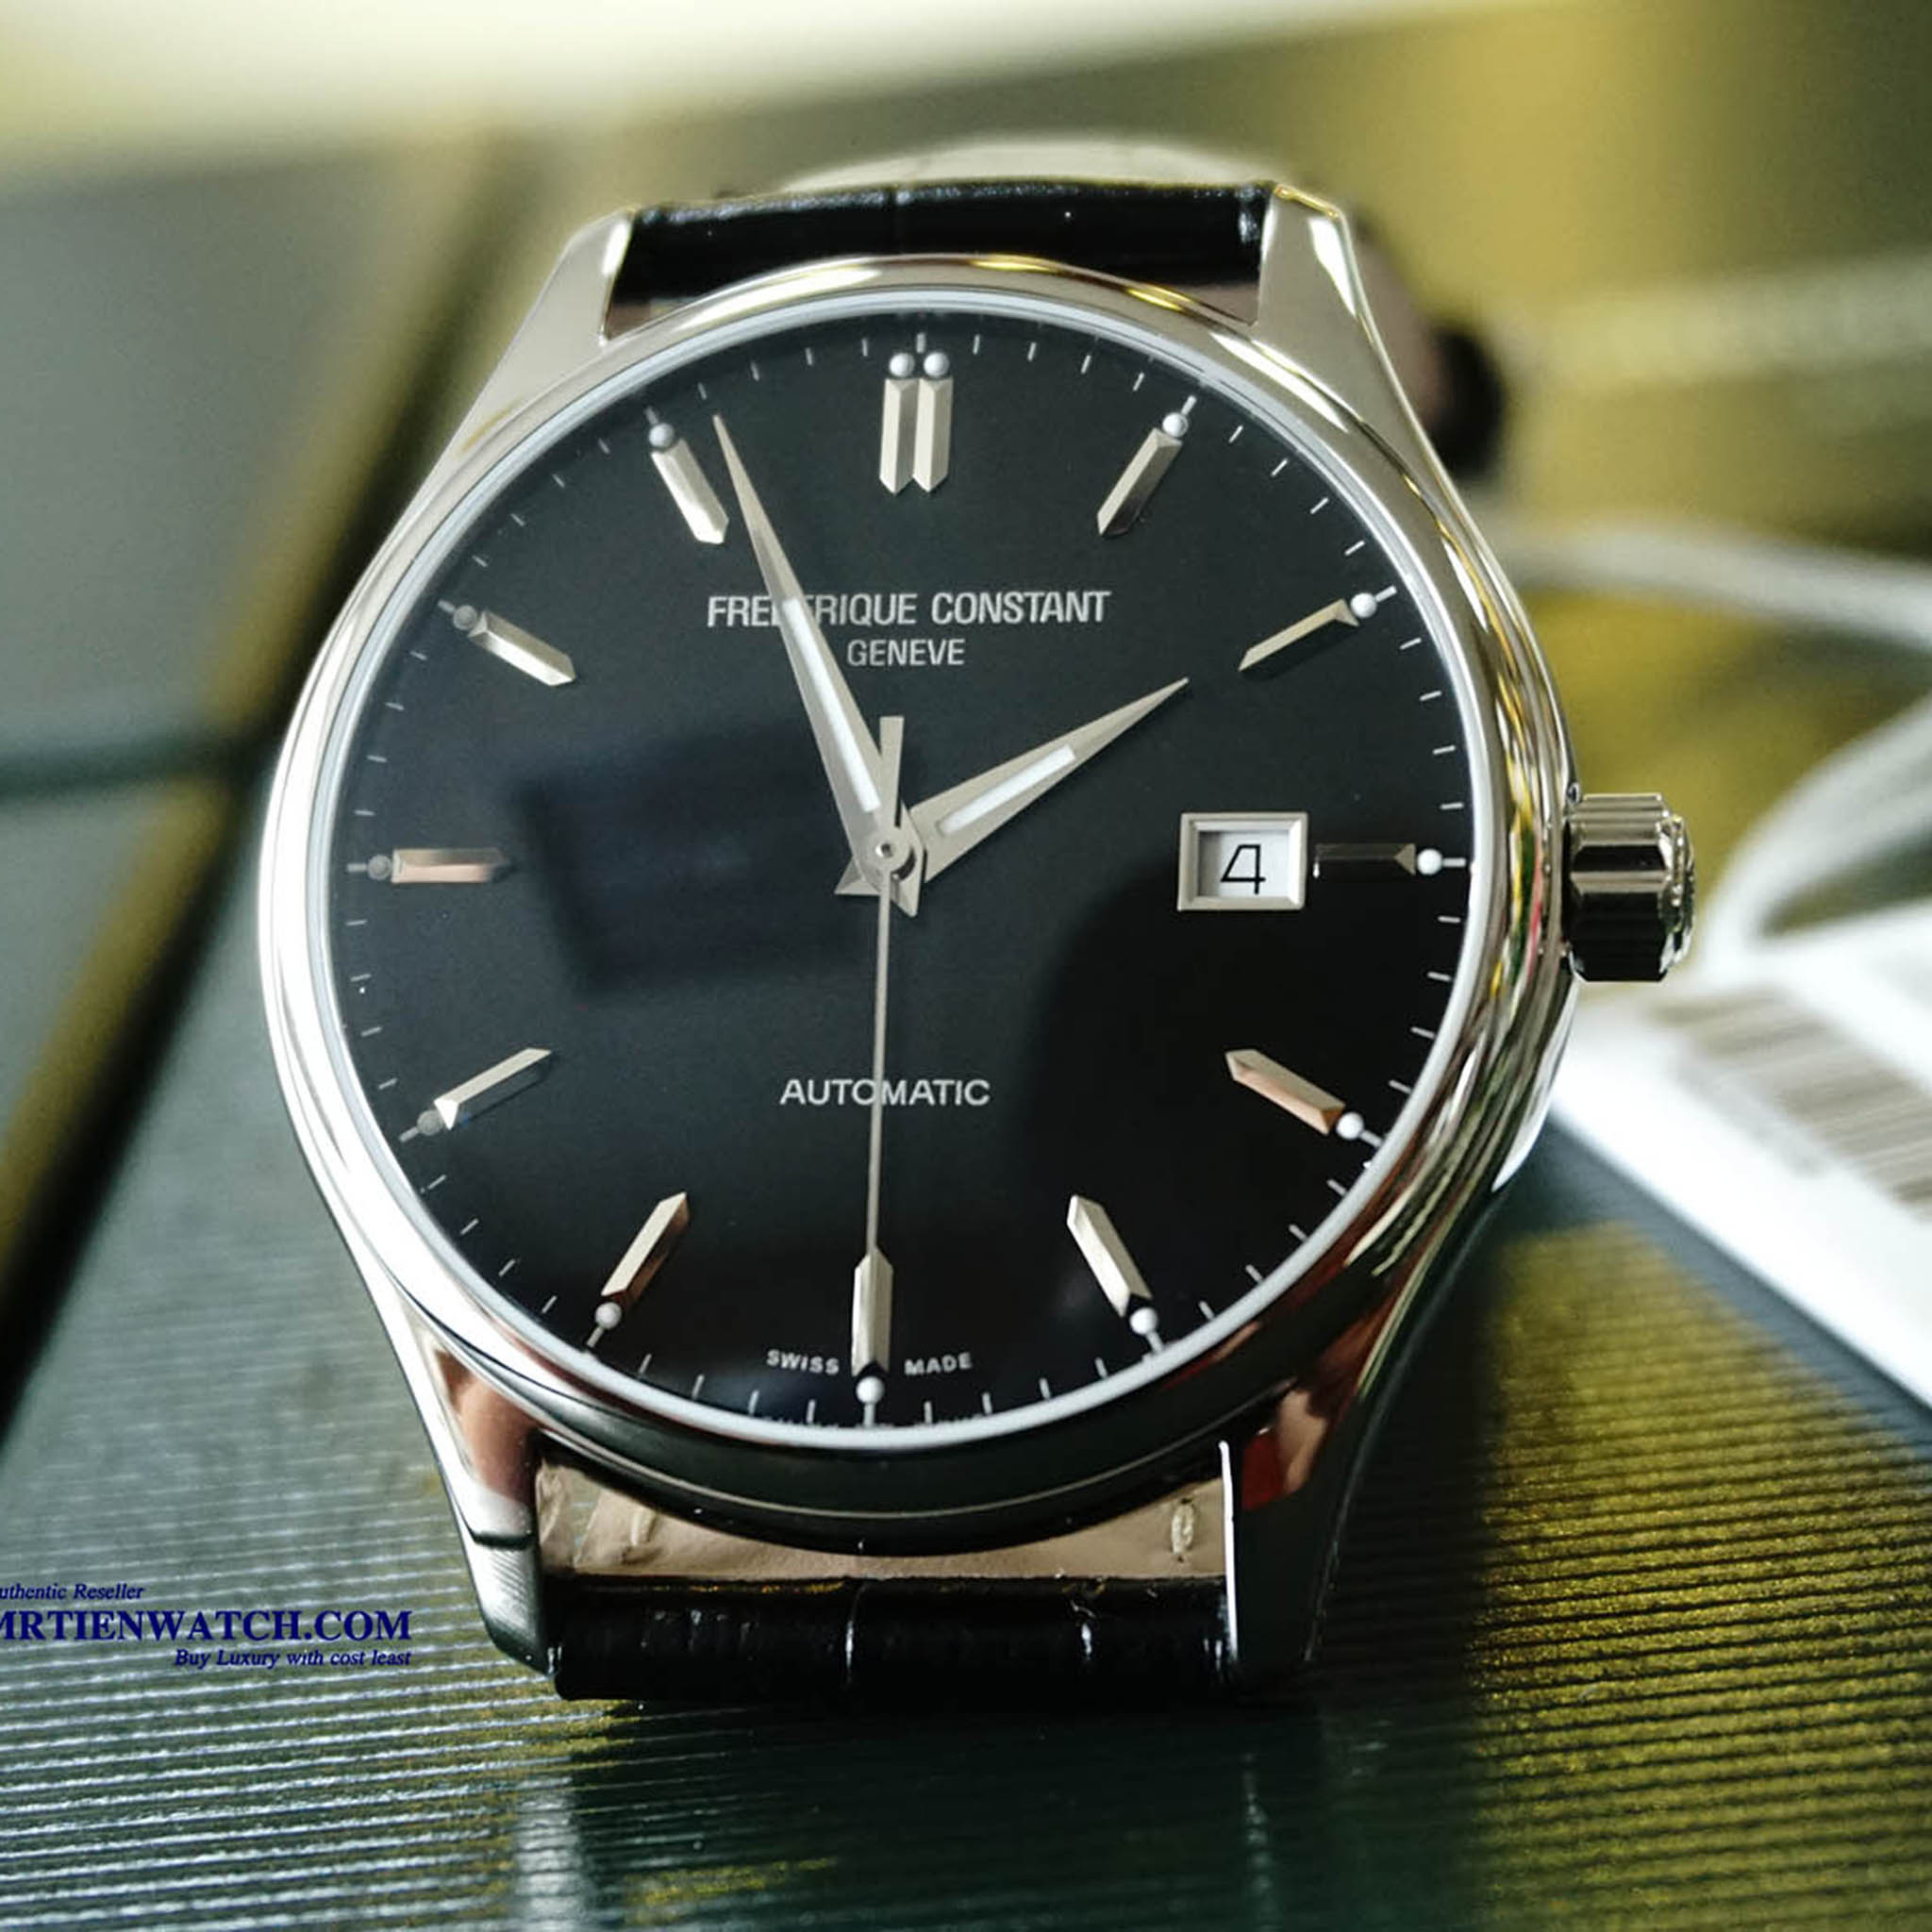 FREDERIQUE CONSTANT AUTOMATIC INDEX BLACK DIAL LEATHER STRAPS FC-303B5B6 - Thép không gỉ